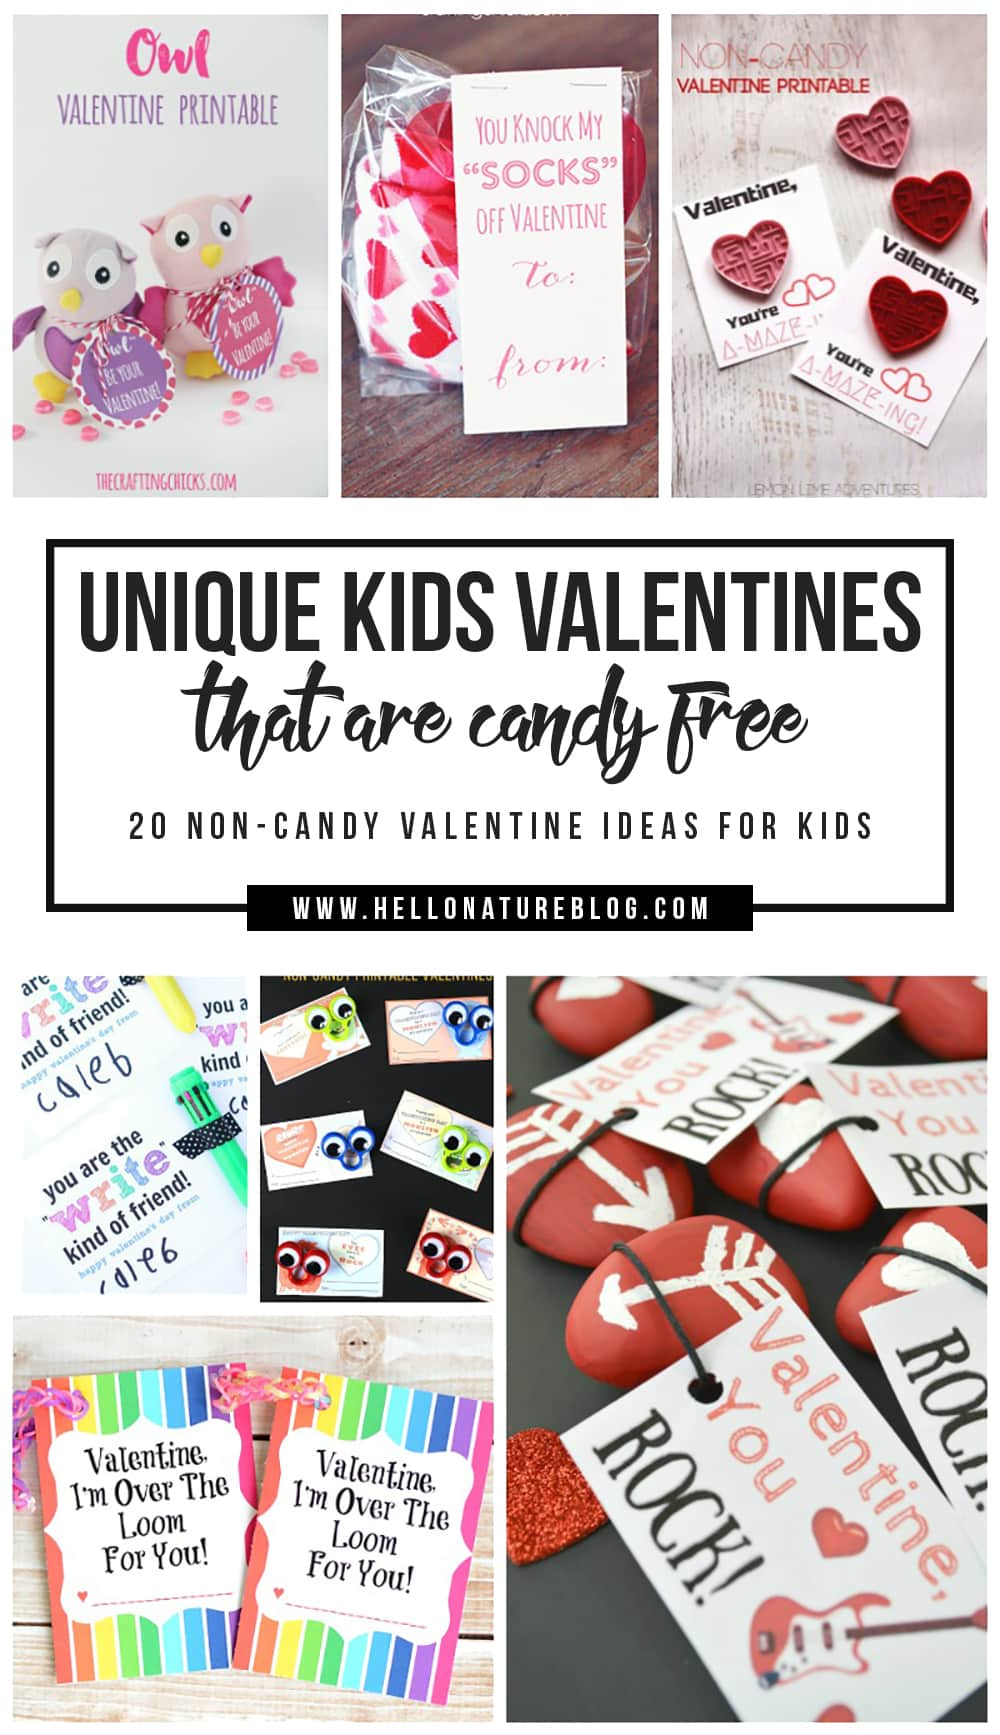 Make your kids forget all about the sugar they're craving this Valentine's Day with these unique kids valentines that are candy free!